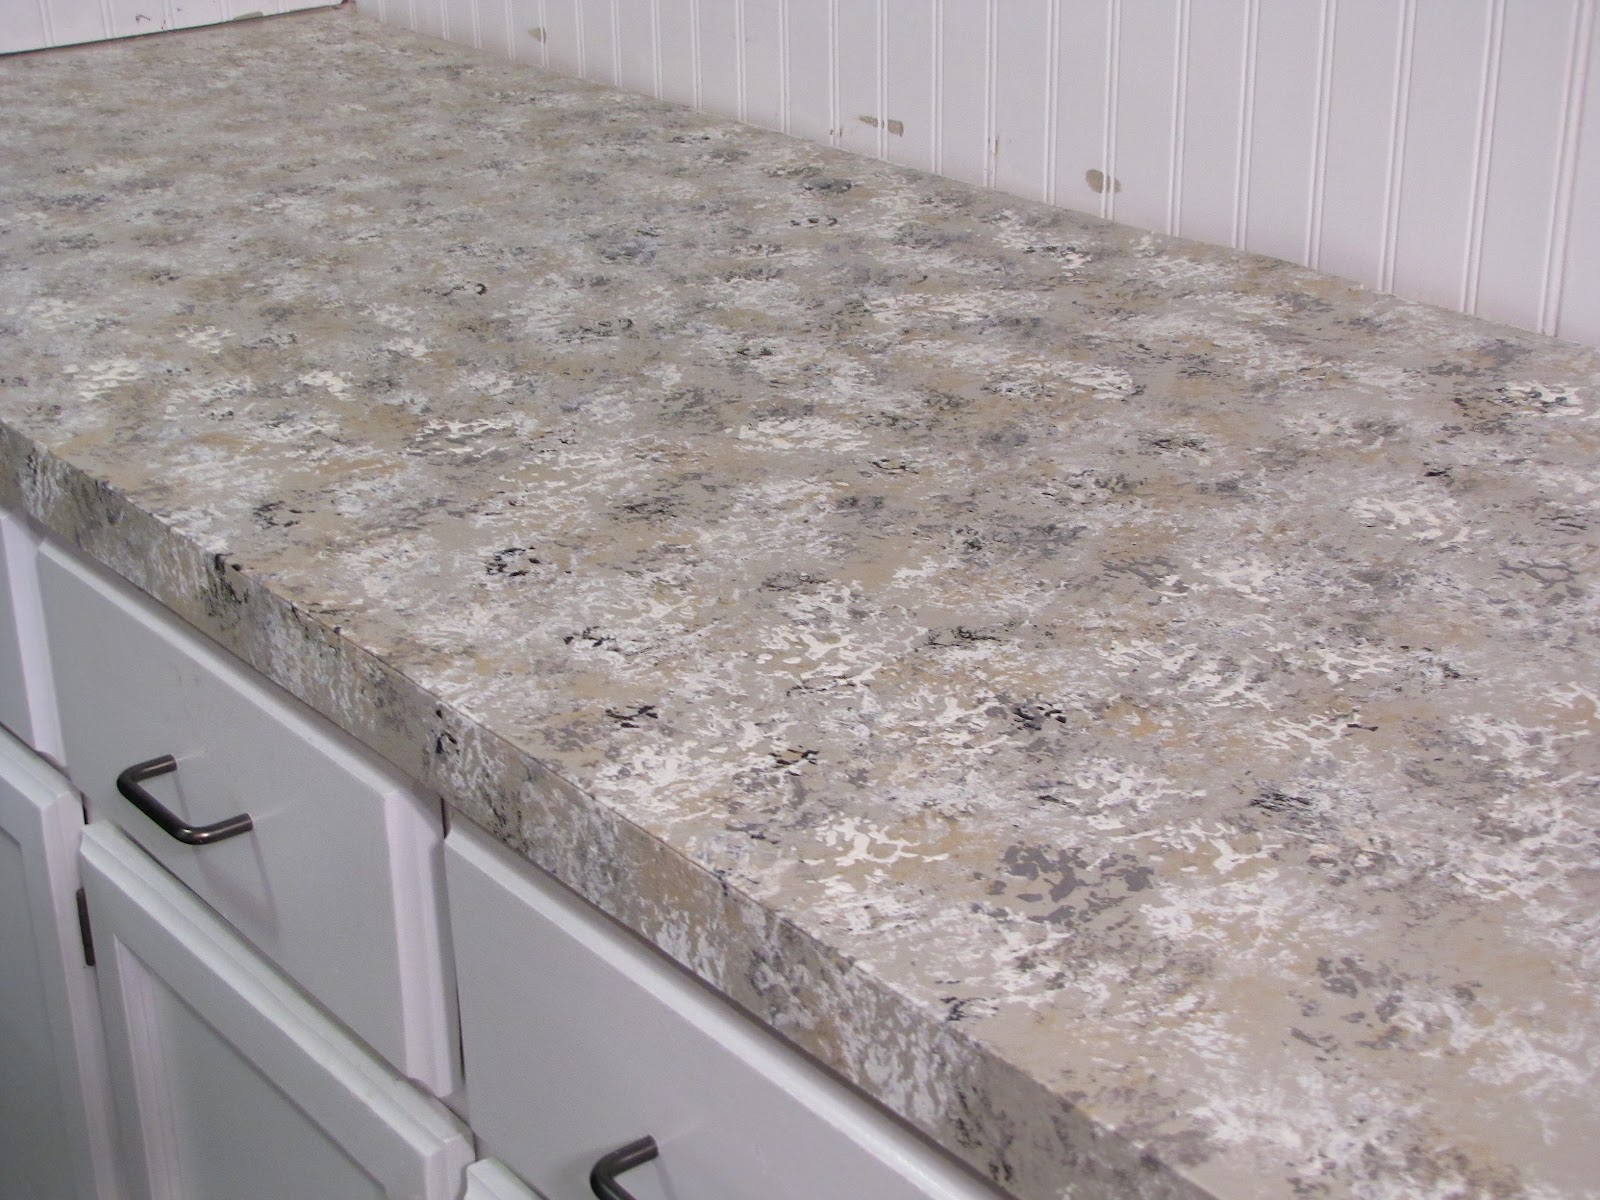 The Modest Homestead: How To Paint Your Countertops To Look Like Granite